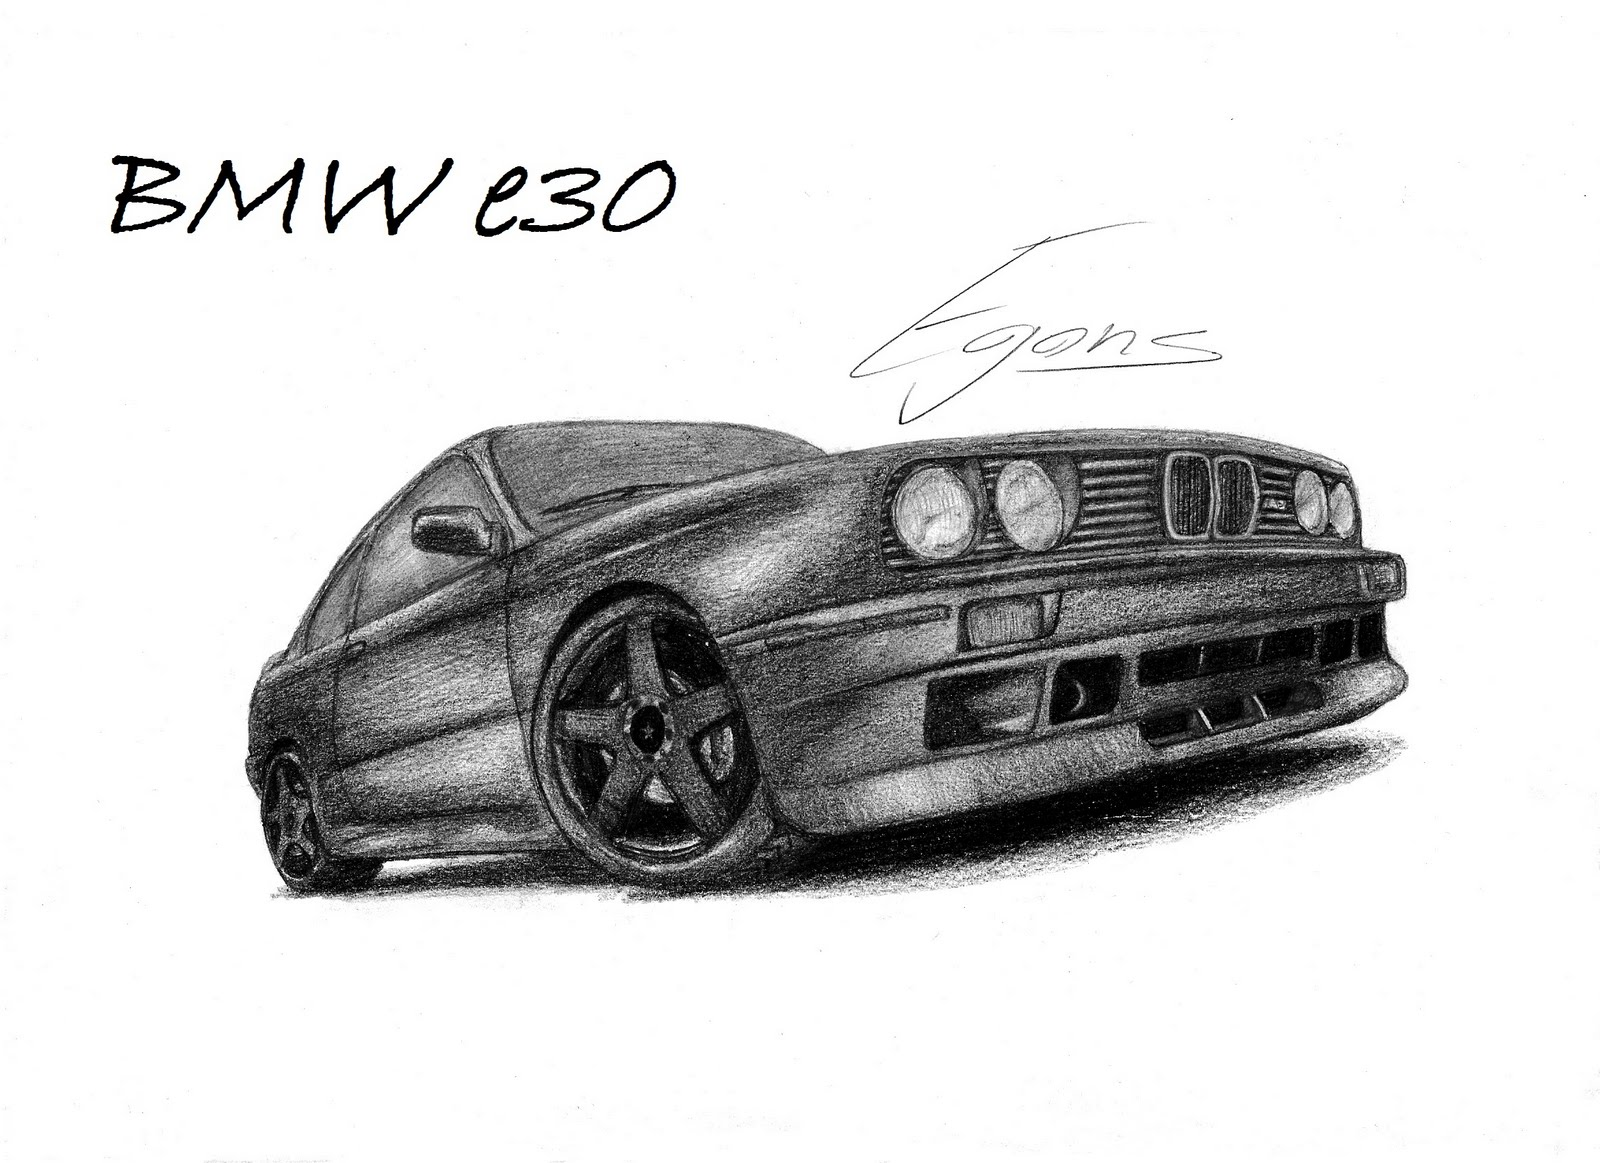 Drawn bmw e30 Sketch E30 BMW E30 Sketch